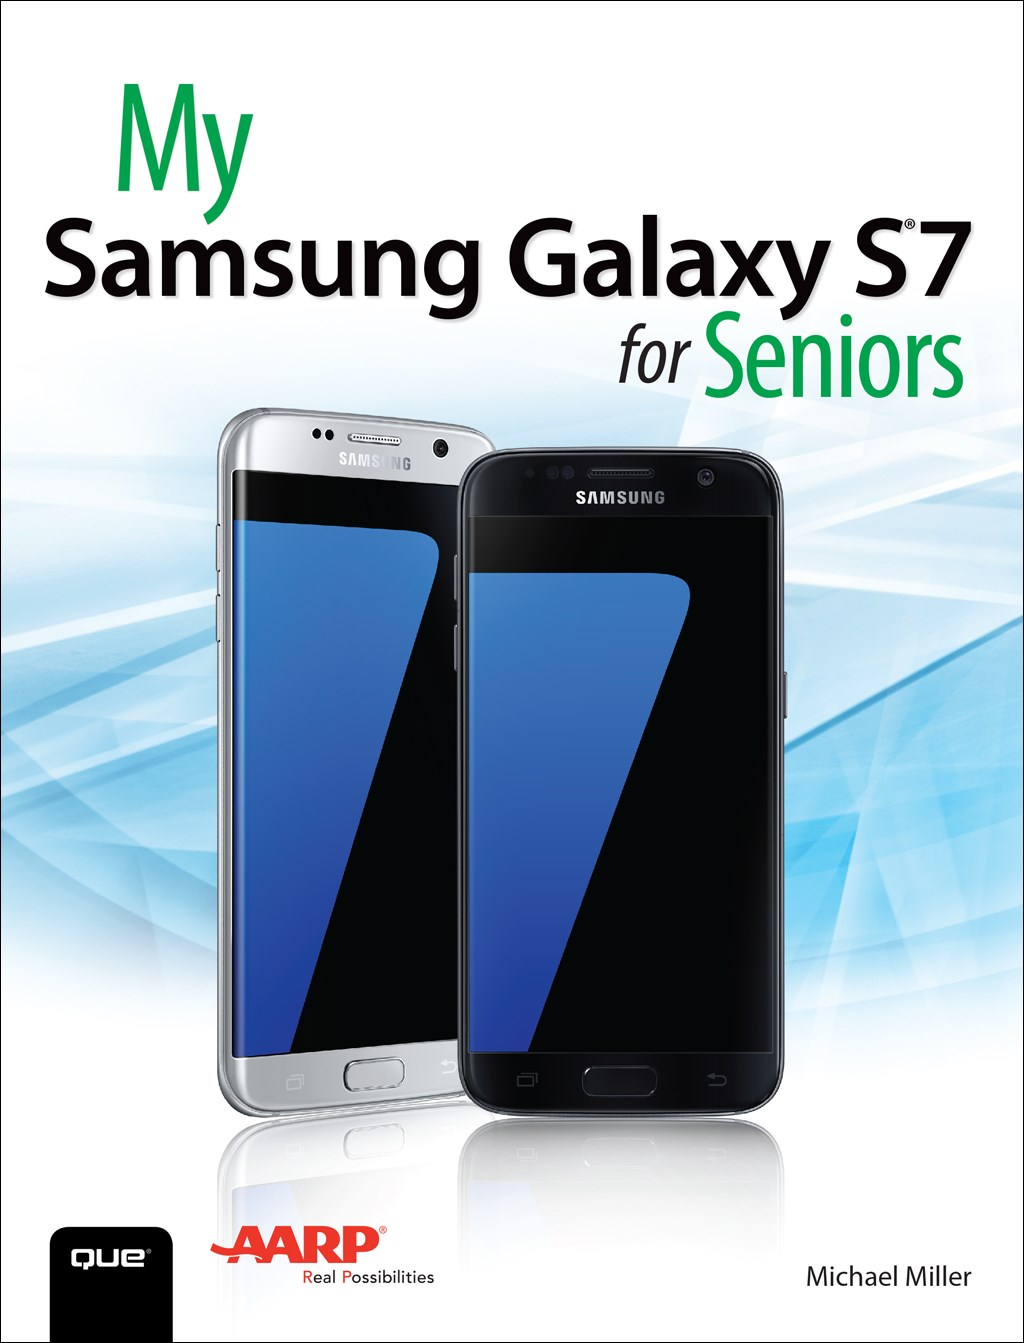 My Samsung Galaxy S7 for Seniors